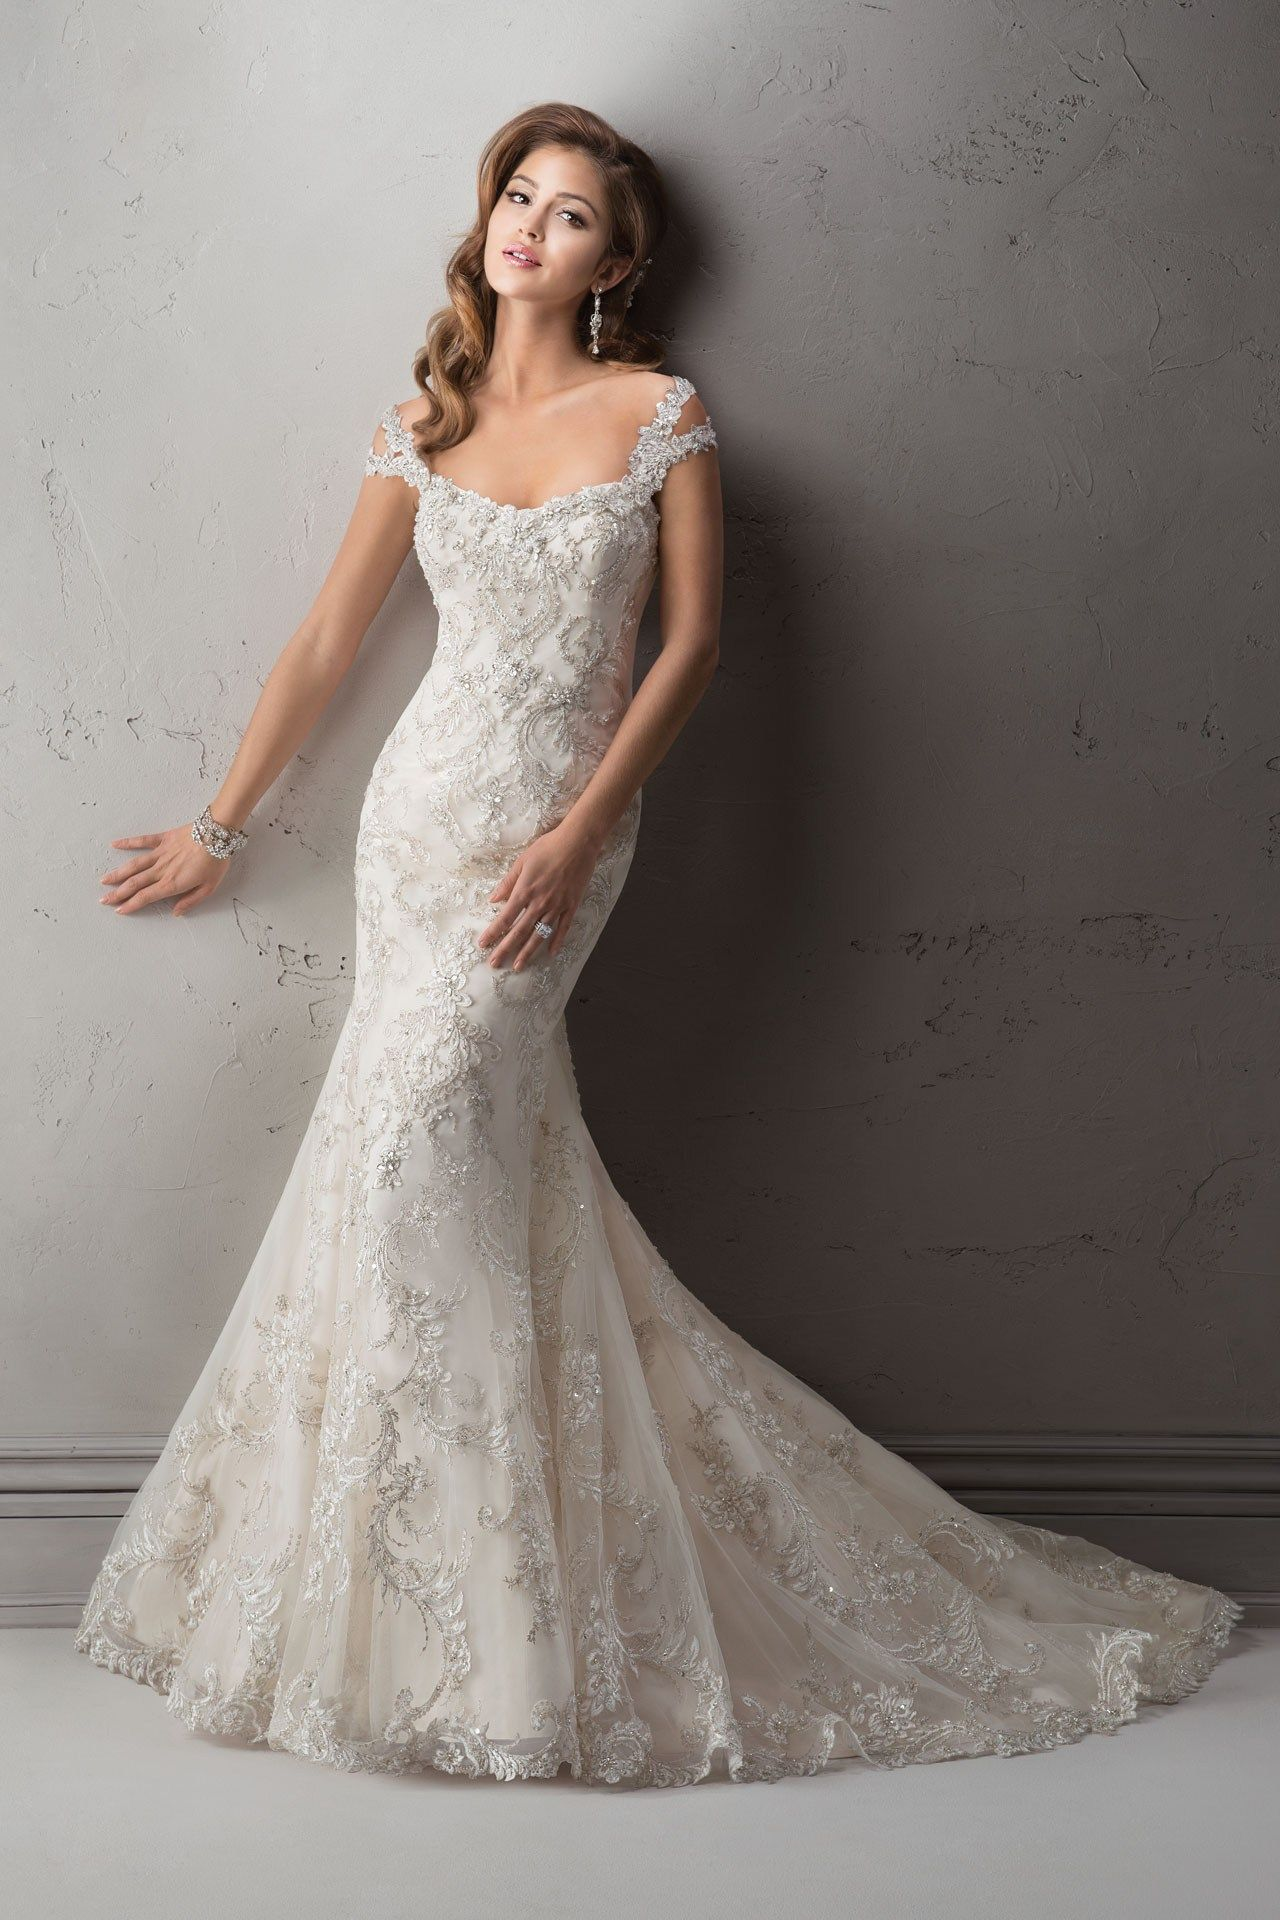 The 25 most popular wedding gowns of 2014 maggie sottero gowns the most popular wedding gowns of 2014 maggie sottero style ettiene junglespirit Gallery